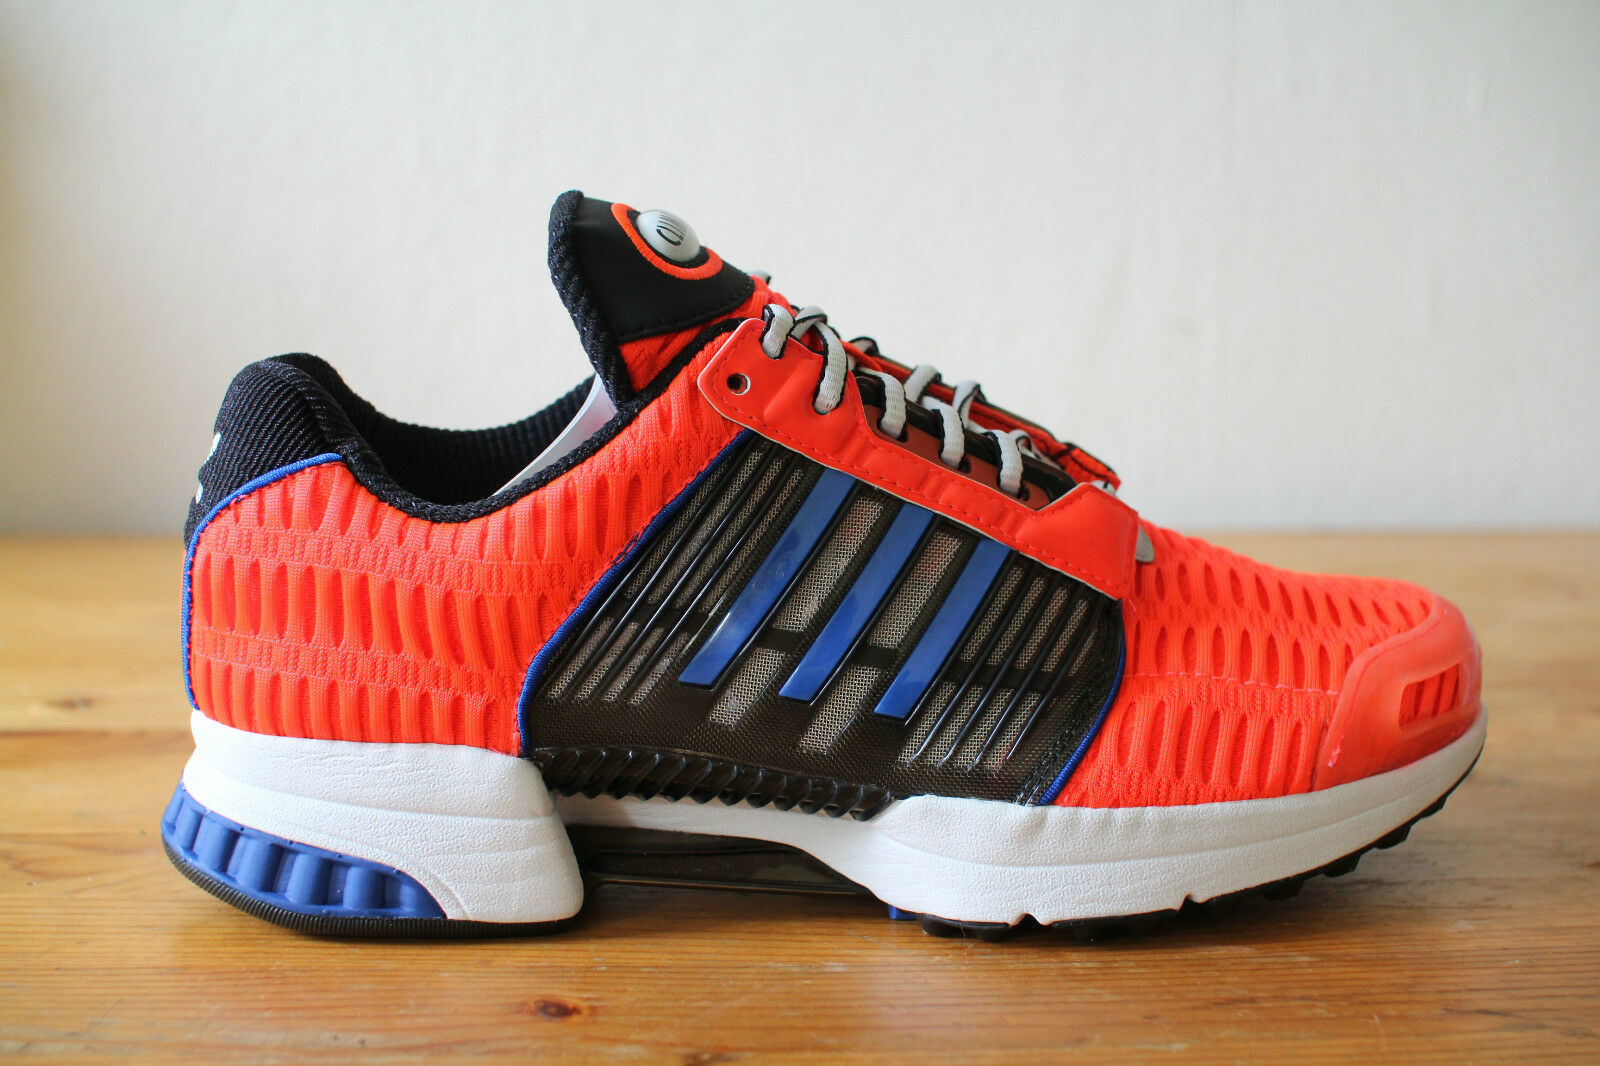 Adidas Clima Cool CC 1 in Orange Gr. 40,41,42,43 Neu & OVP